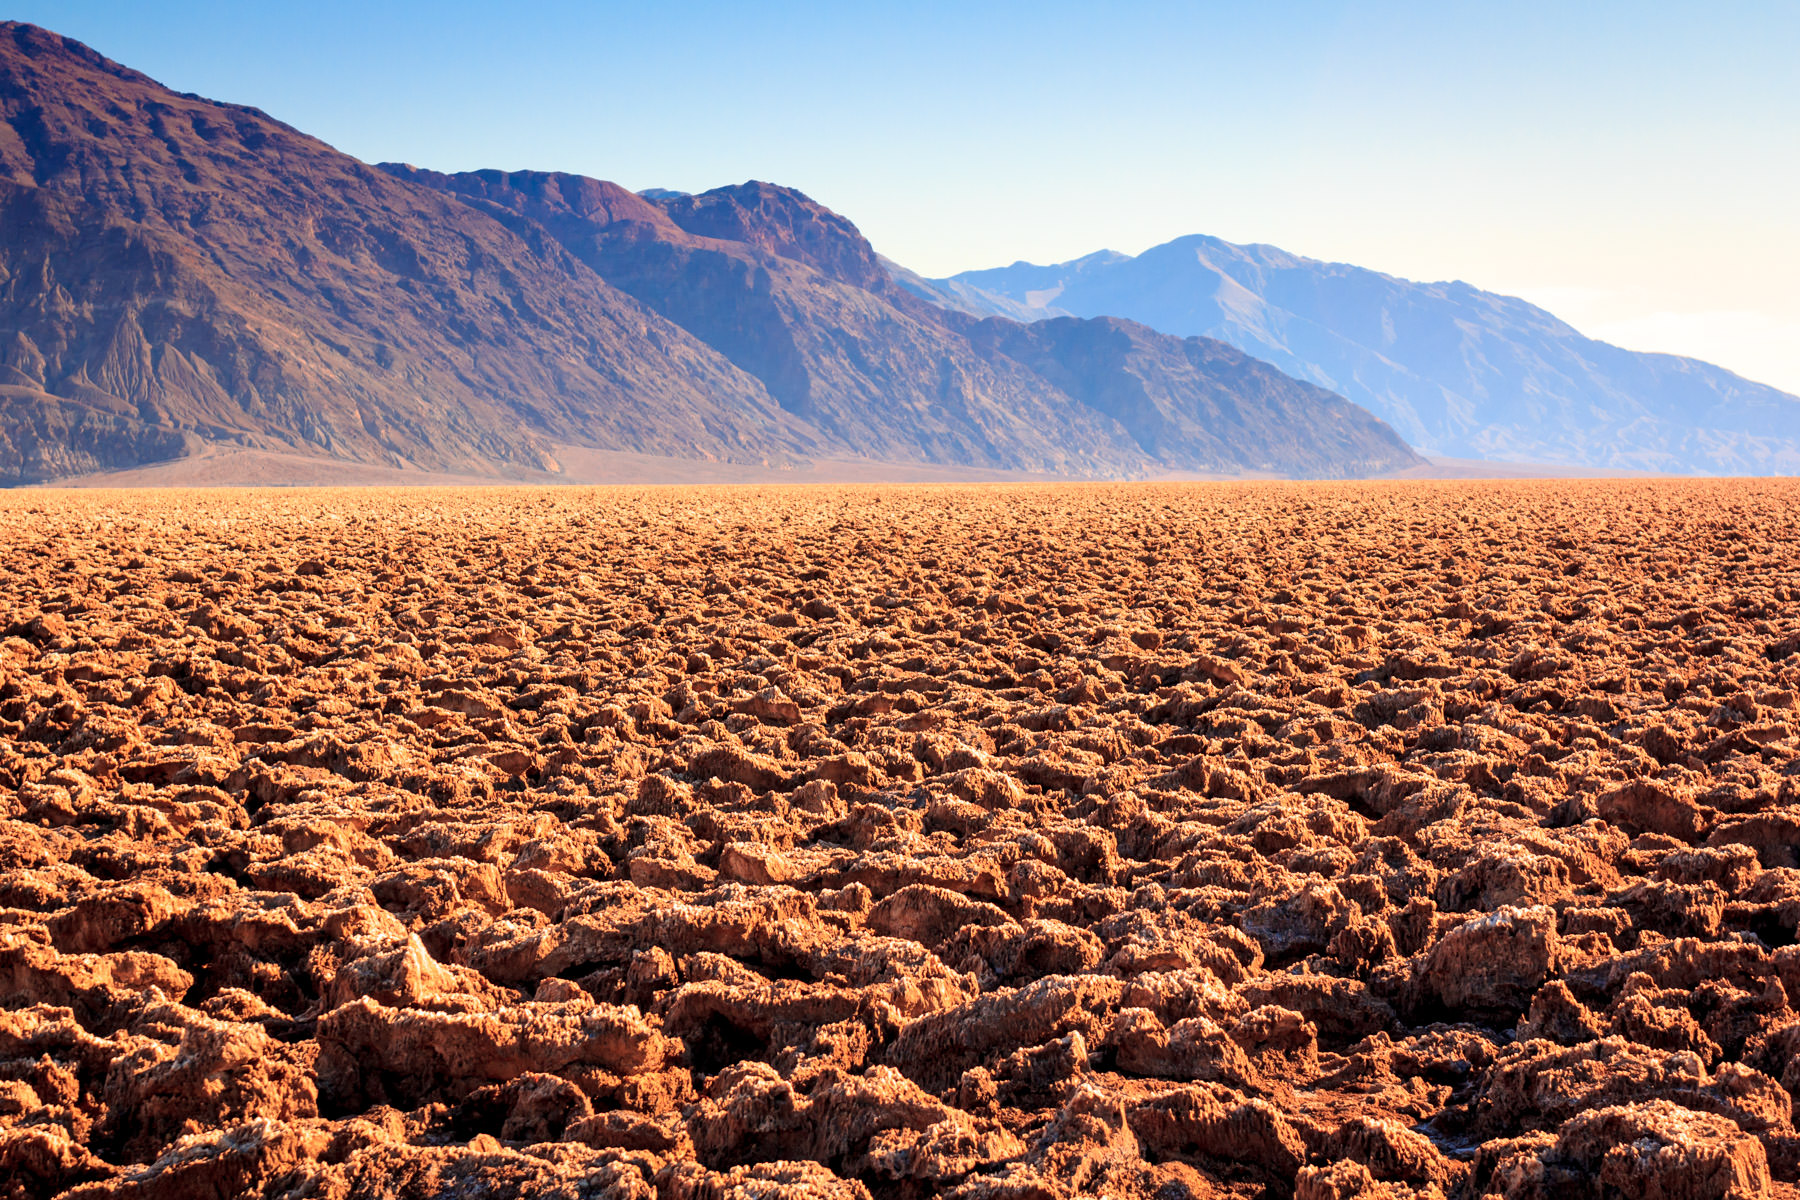 """The rugged landscape of California's Death Valley National Park's """"Devil's Golf Course""""; a large salt pan covered in large halite salt crystals deposited upon the evaporation of the prehistoric Lake Manly."""